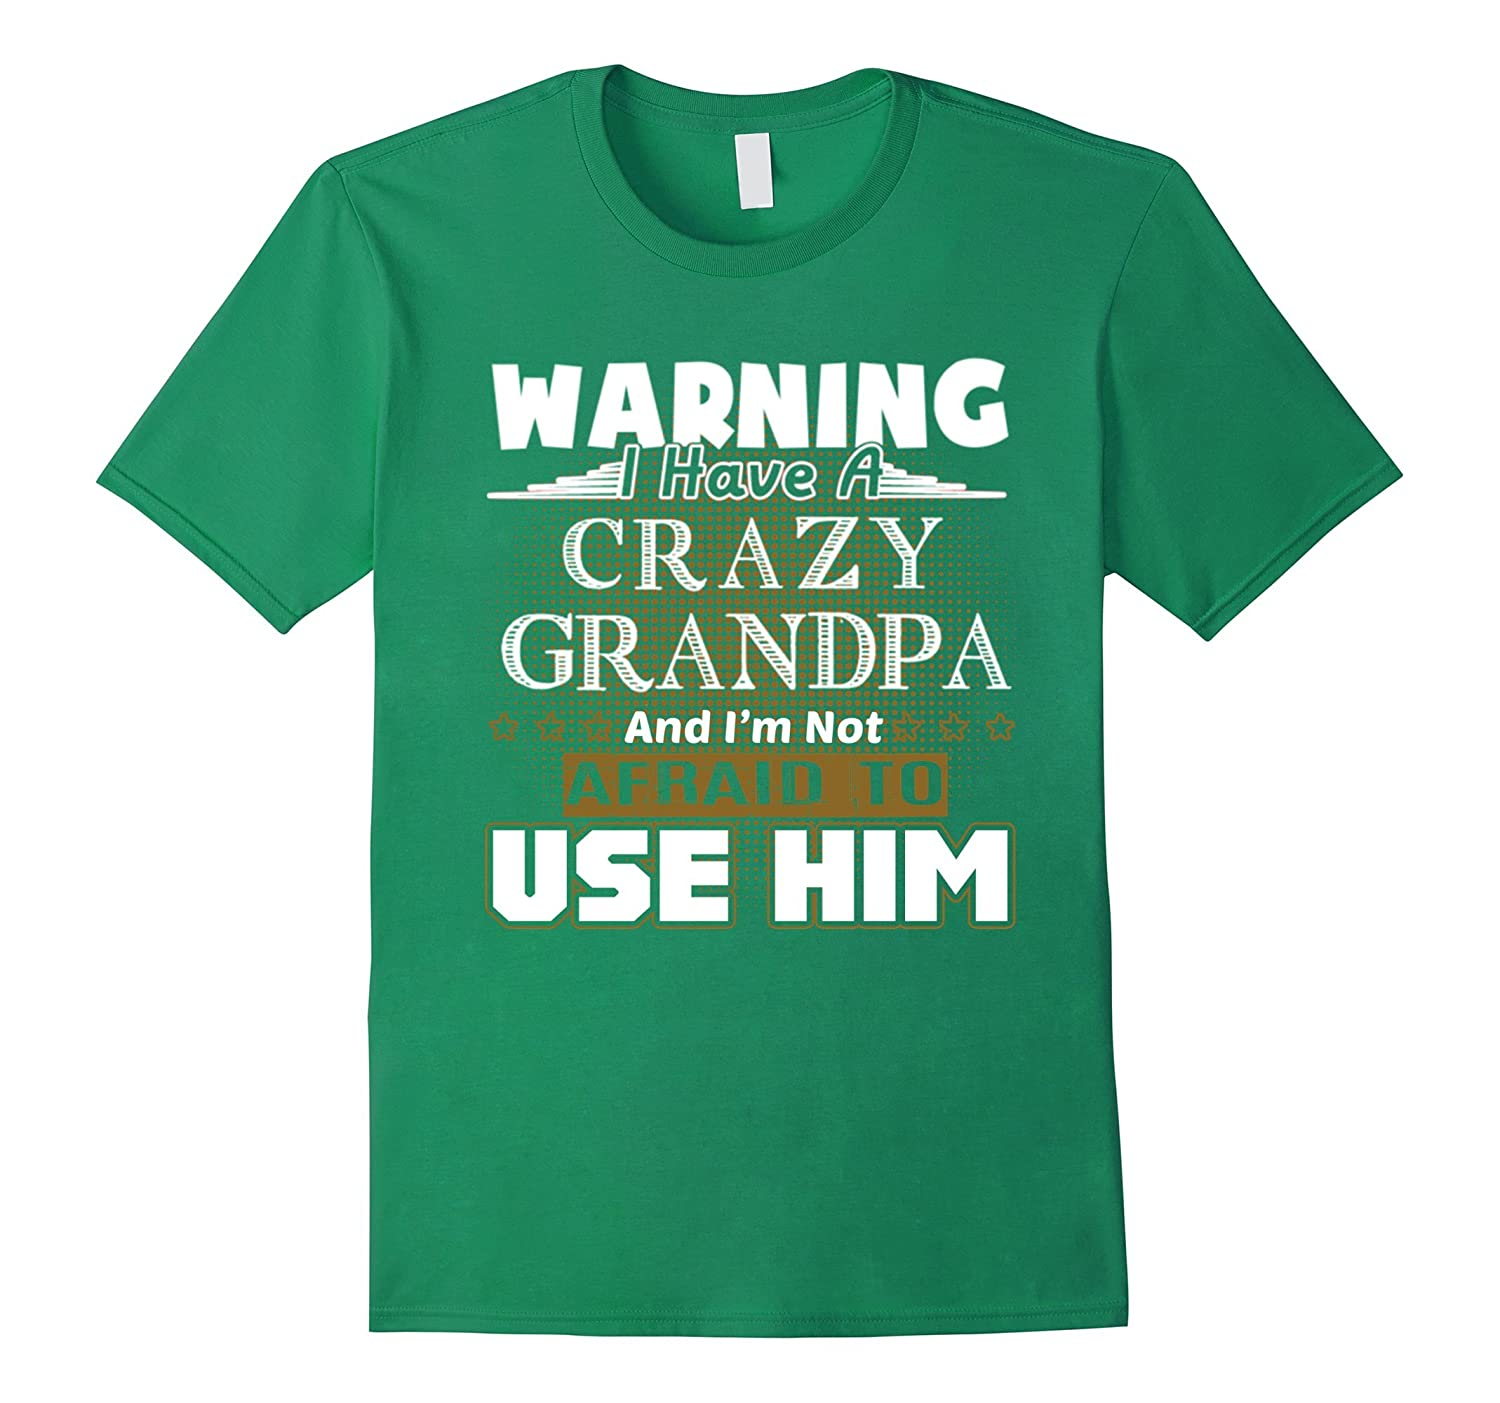 af82fe0b WARNING I HAVE A CRAZY GRANDPA AFRAID TO USE HIM T-SHIRTS – Hntee.com